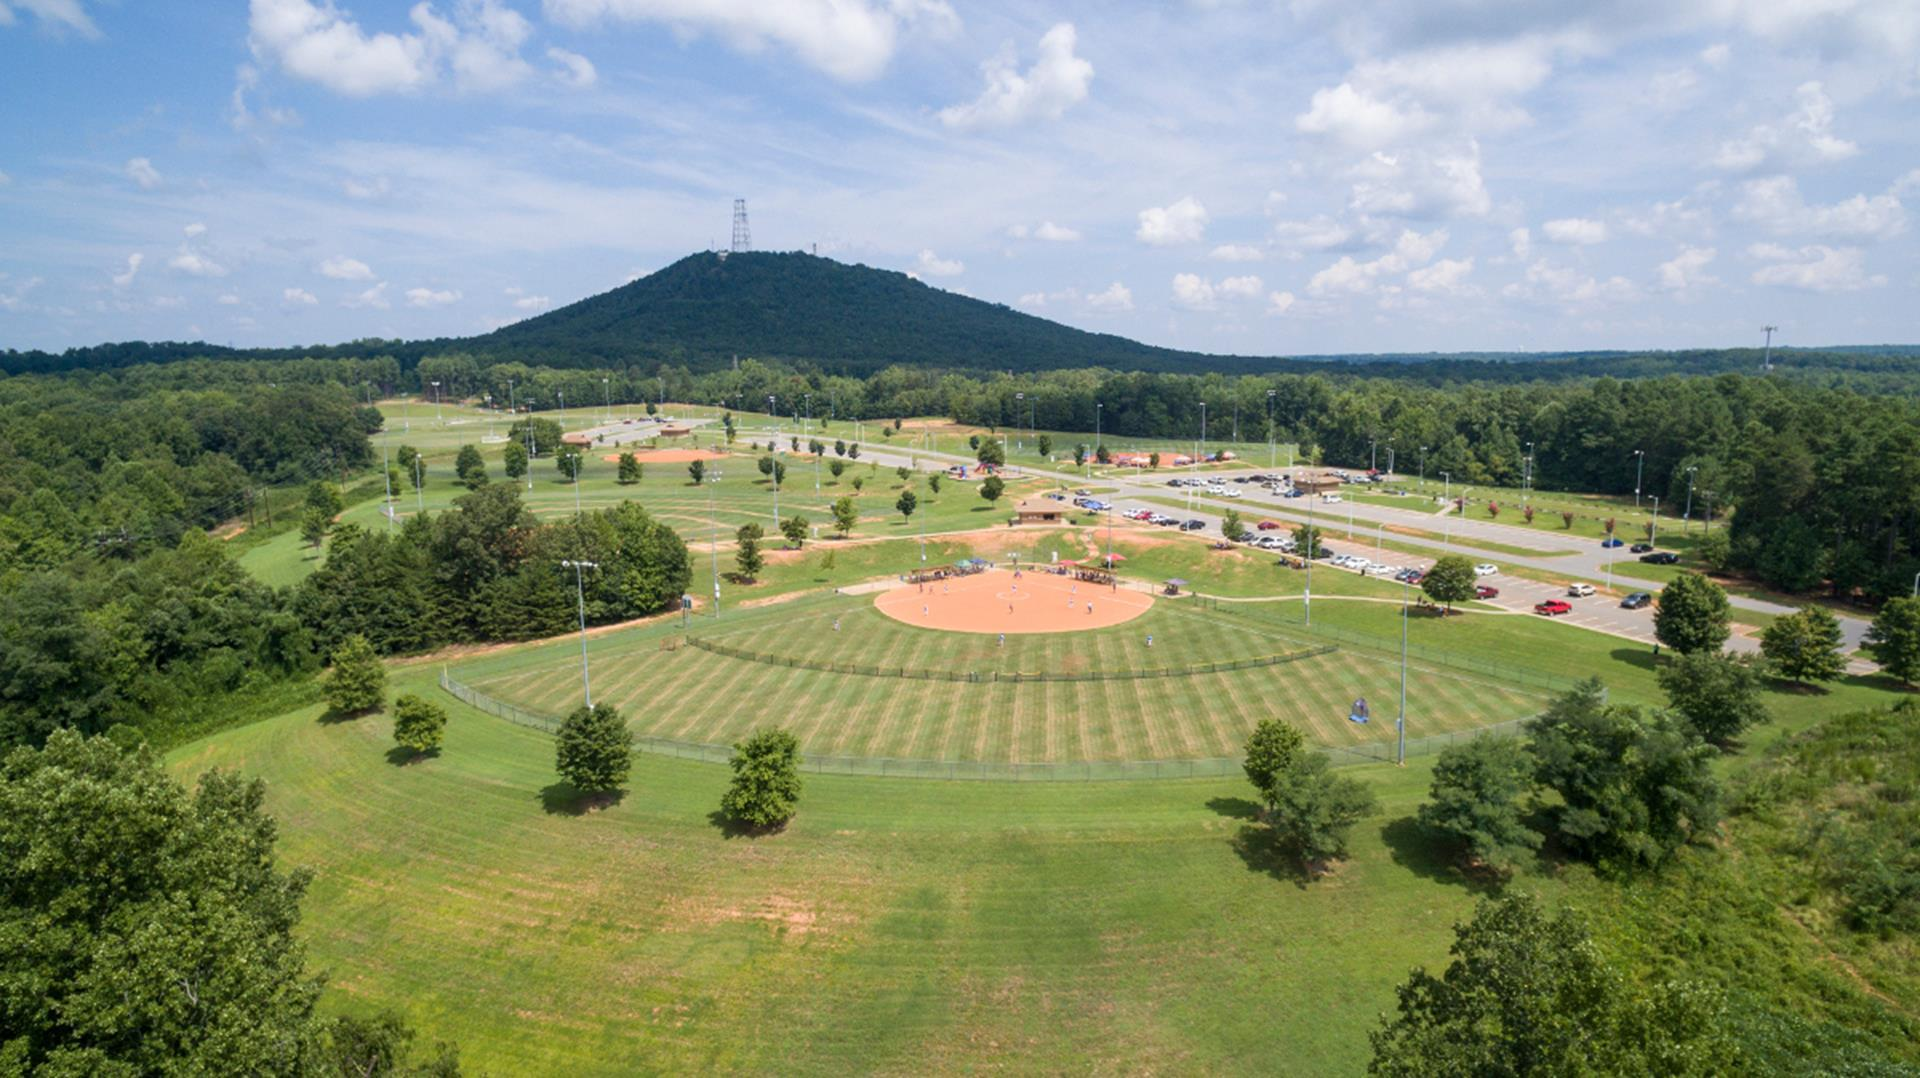 Endless Outdoor Sporting Events in Gaston County, North Carolina